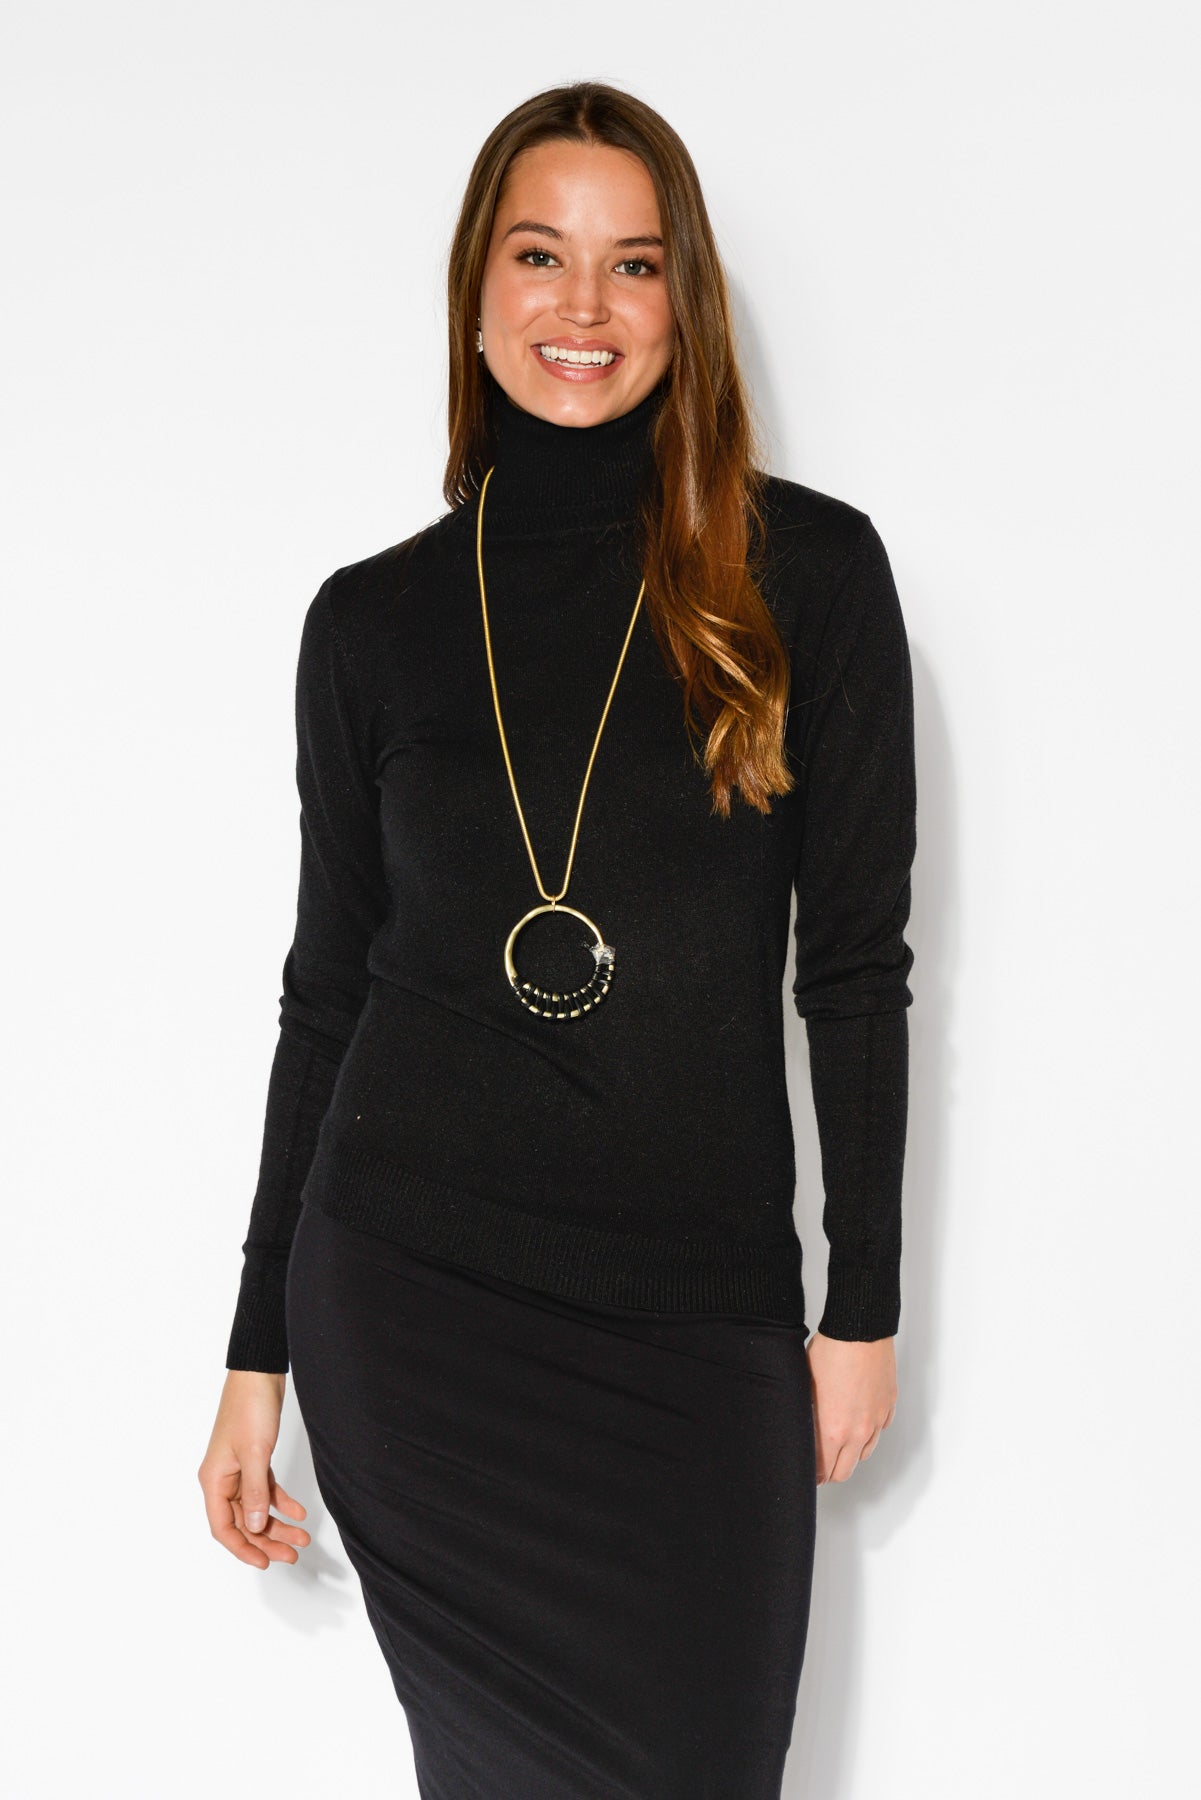 Black Turtleneck Knit Top - Blue Bungalow